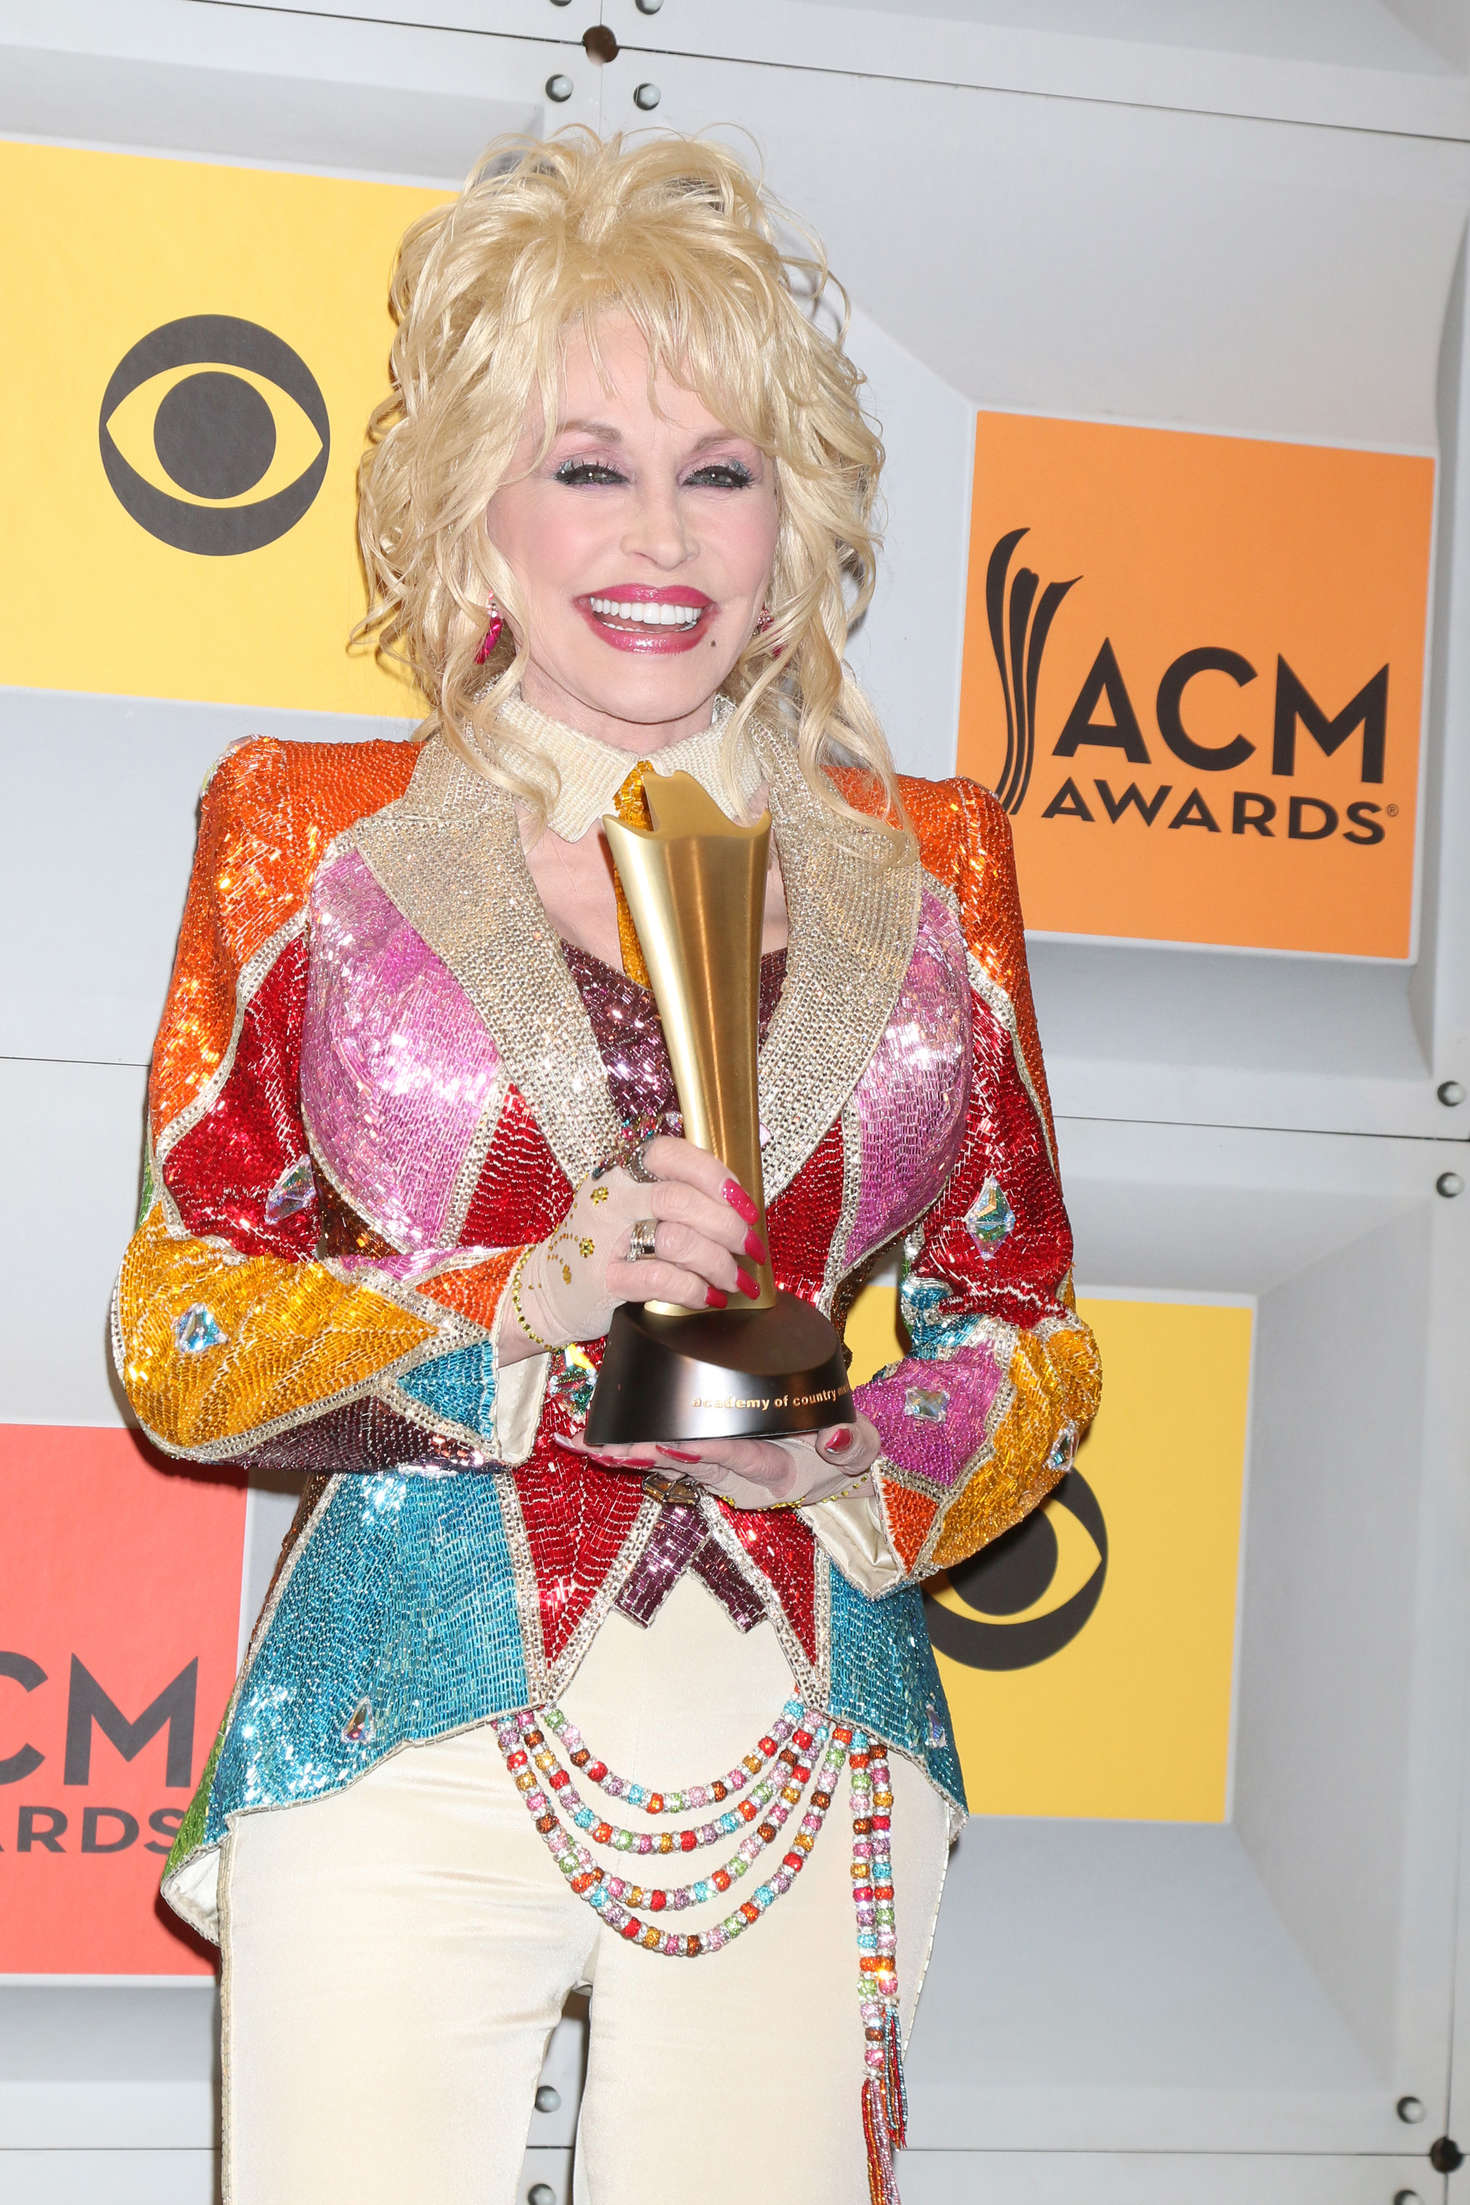 Dolly Parton Academy of Country Music Awards in Las Vegas